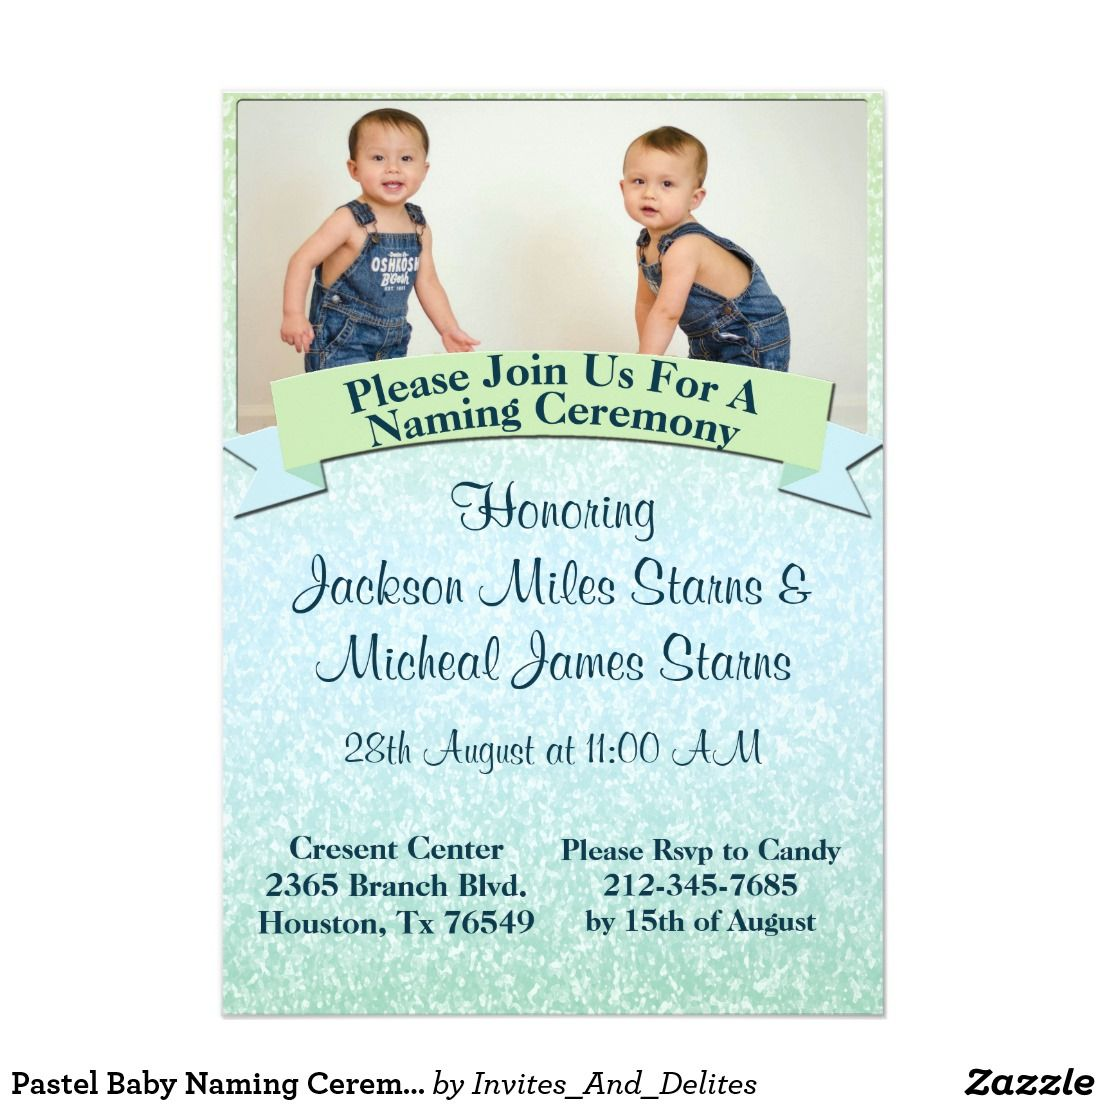 Pastel Baby Naming Ceremony Invite  Zazzle    Naming